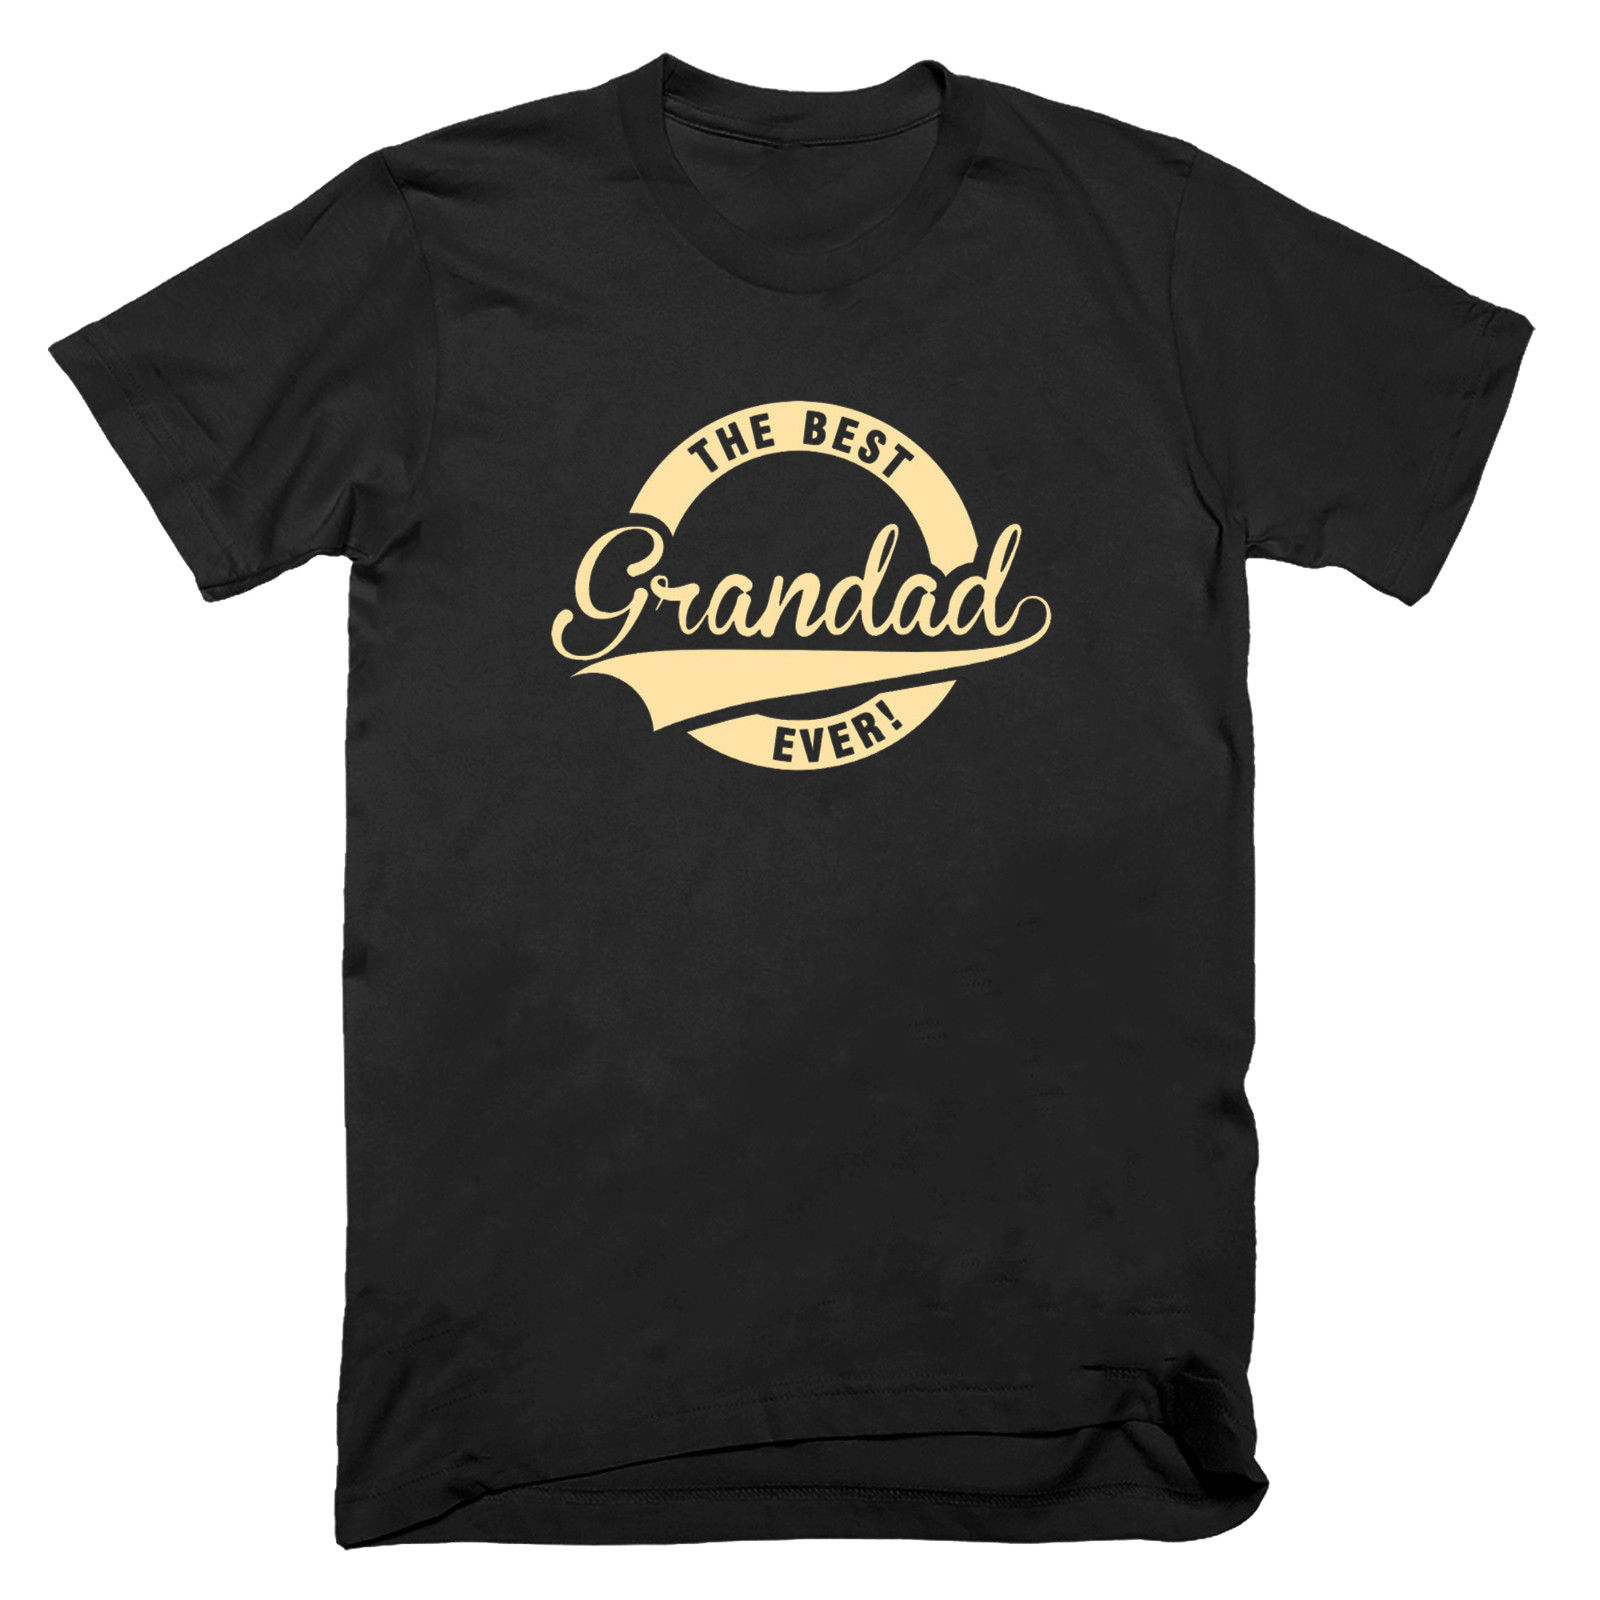 Mens THE BEST GRANDAD EVER T Shirt Funny Fathers Day Present Dads Gift S -3XL